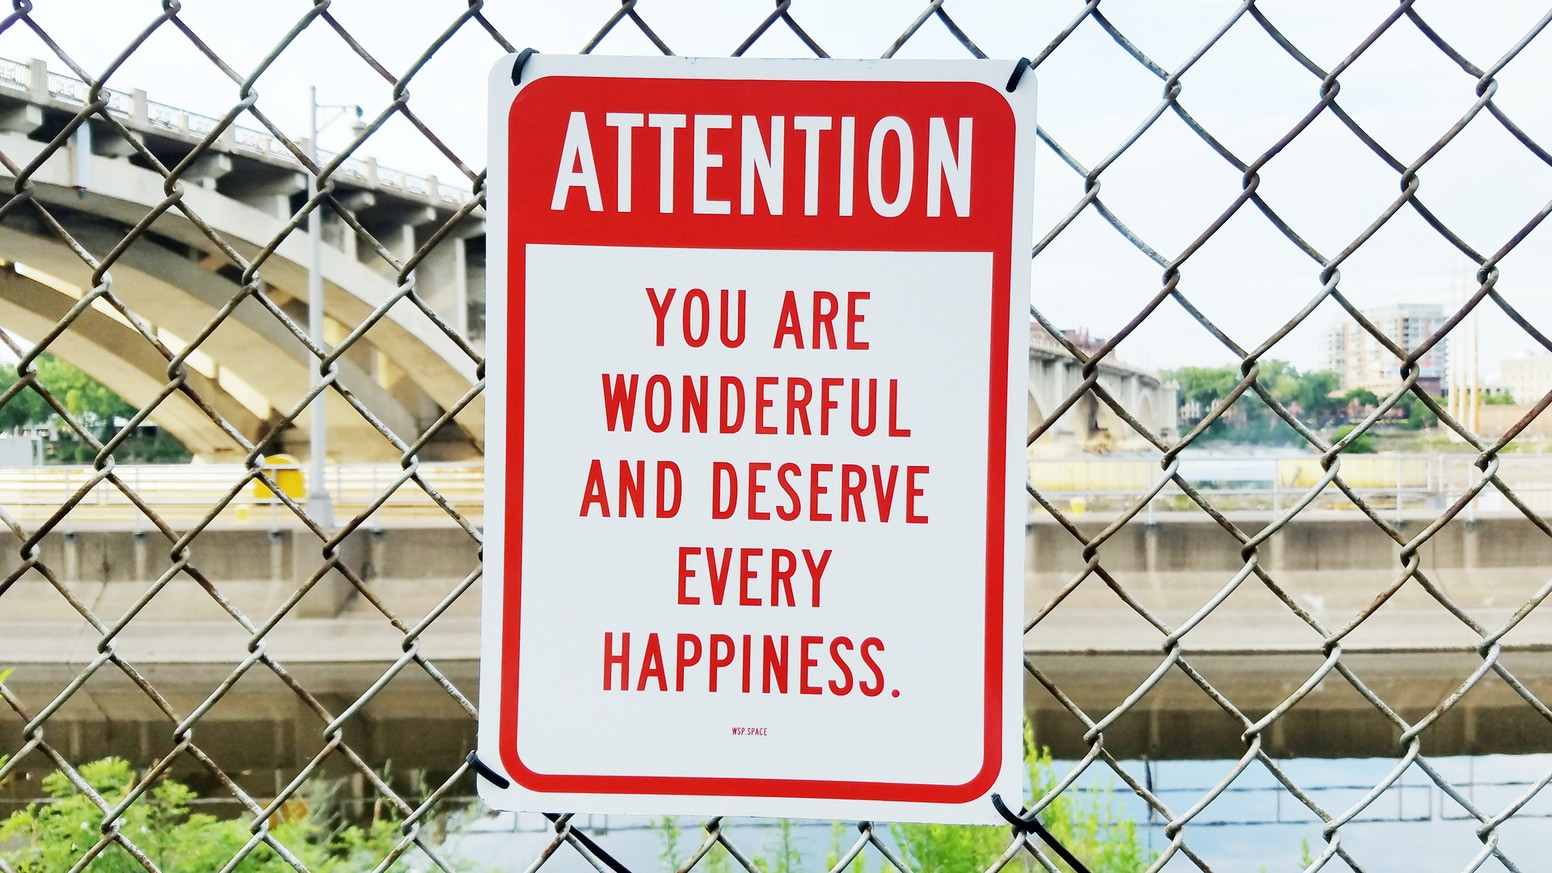 A guerrilla art series of unexpected sayings on metal street signs, installed in public spaces. Now you can get a sign for yourself!